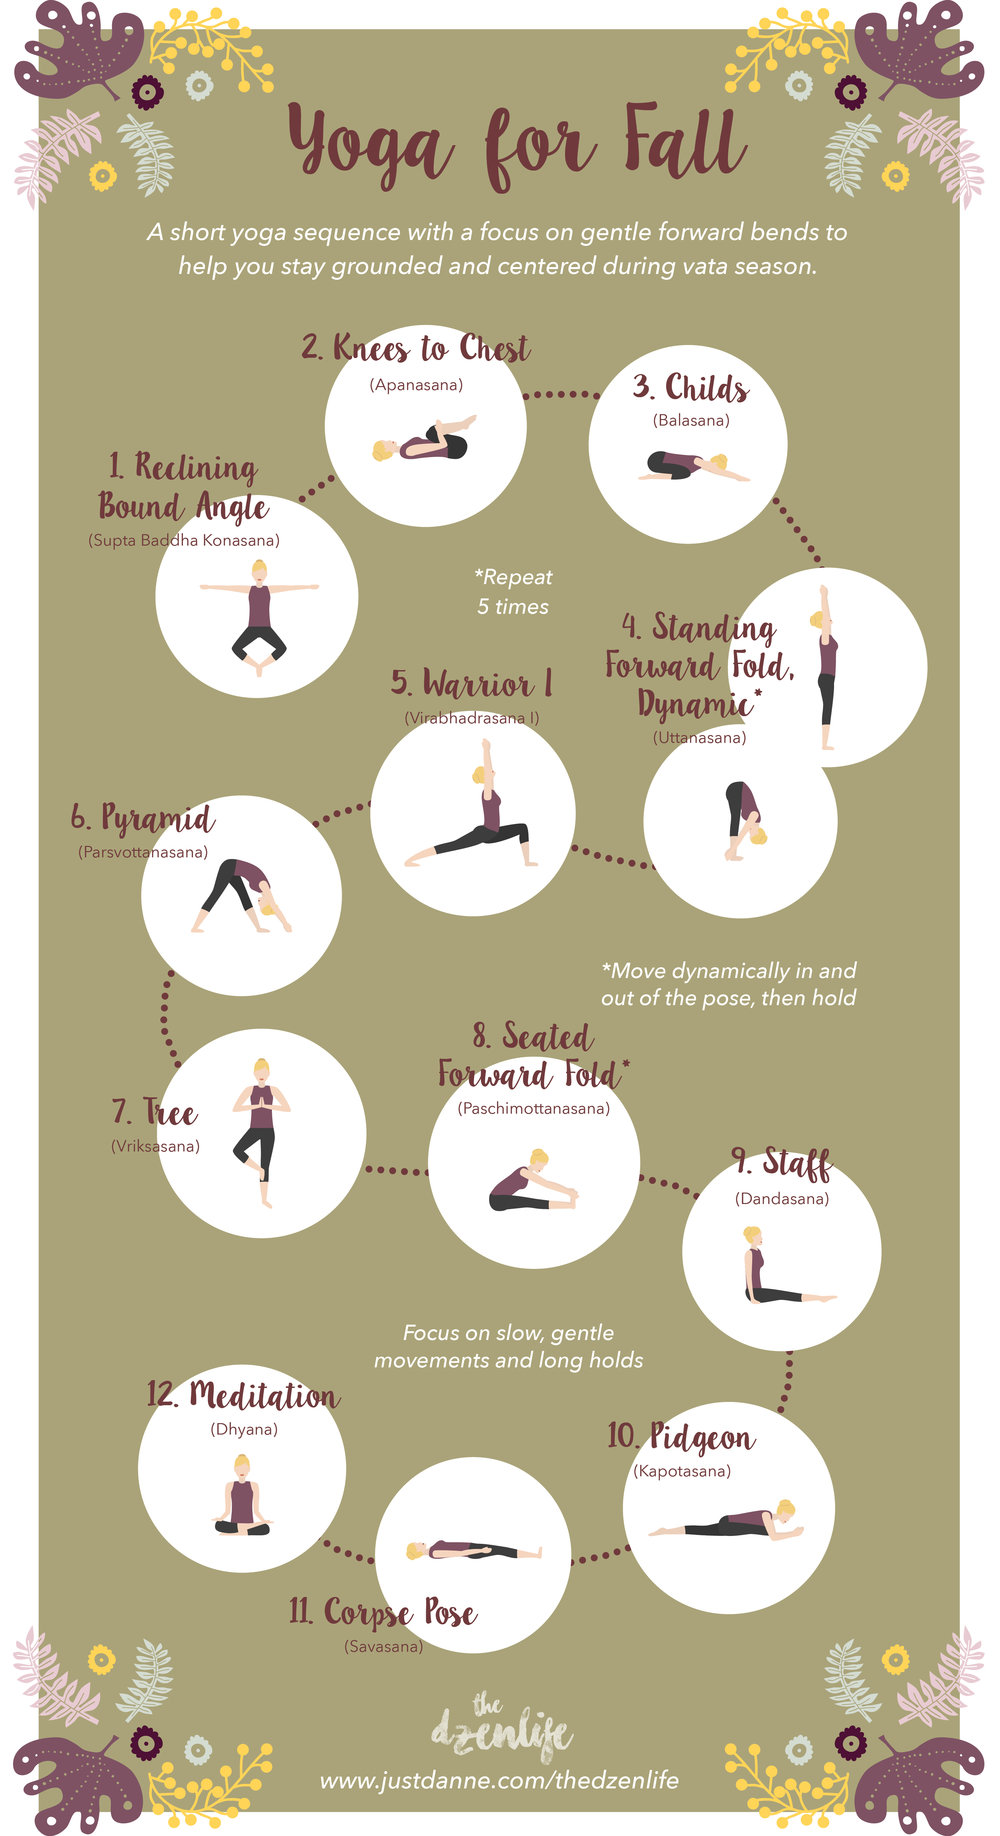 A Short Yoga Sequence for Fall from The DzenLife